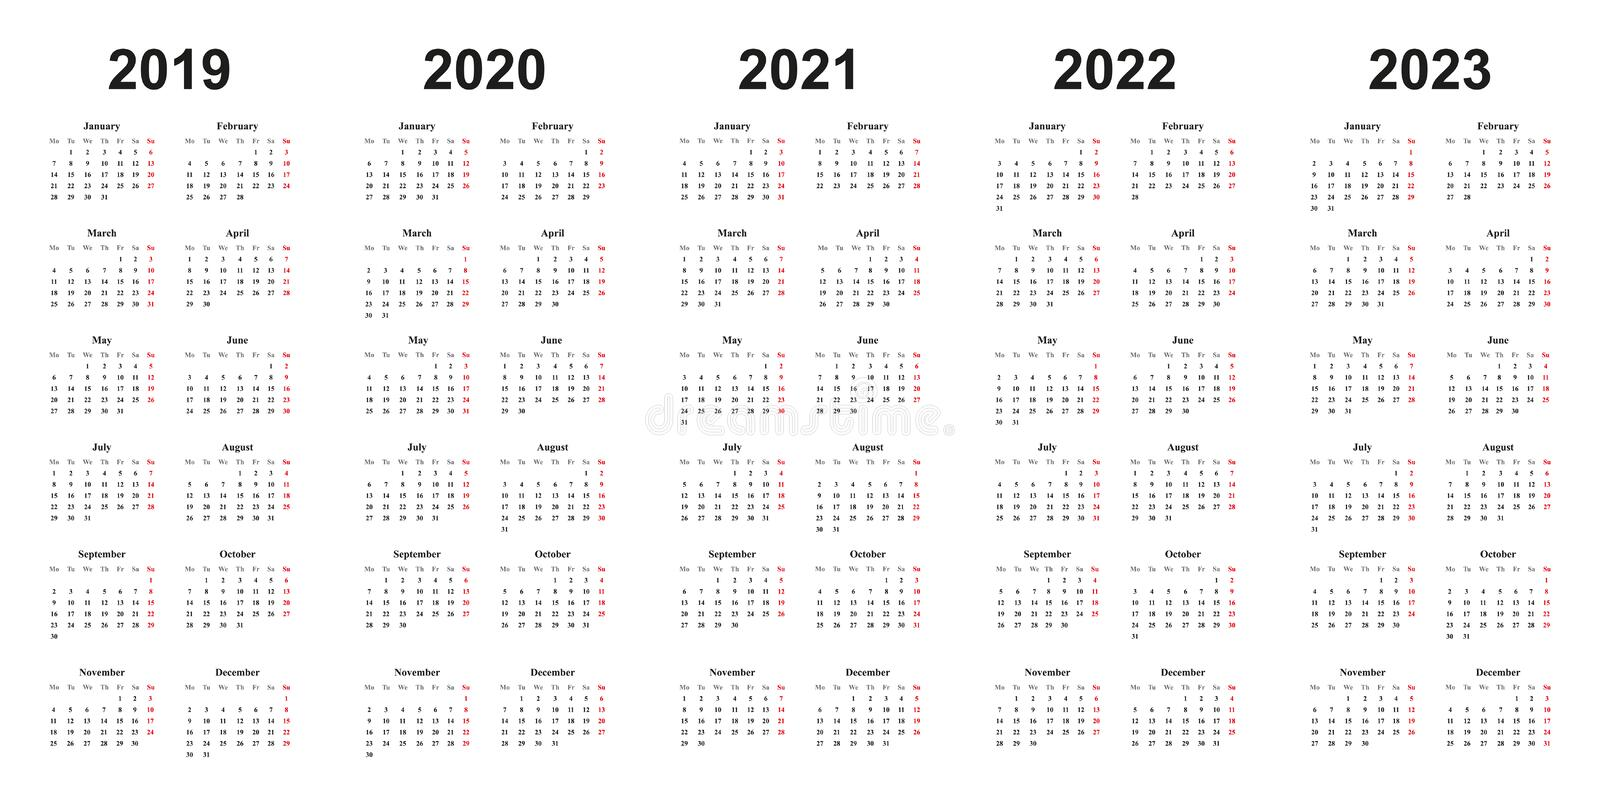 2016 2022 2023 Calendar.Calendar Template Set For 2018 2019 2020 2021 2022 2023 2024 2025 2026 And 2027 Years In One Vector File Stock Vector Illustration Of Isolated Grid 101934802